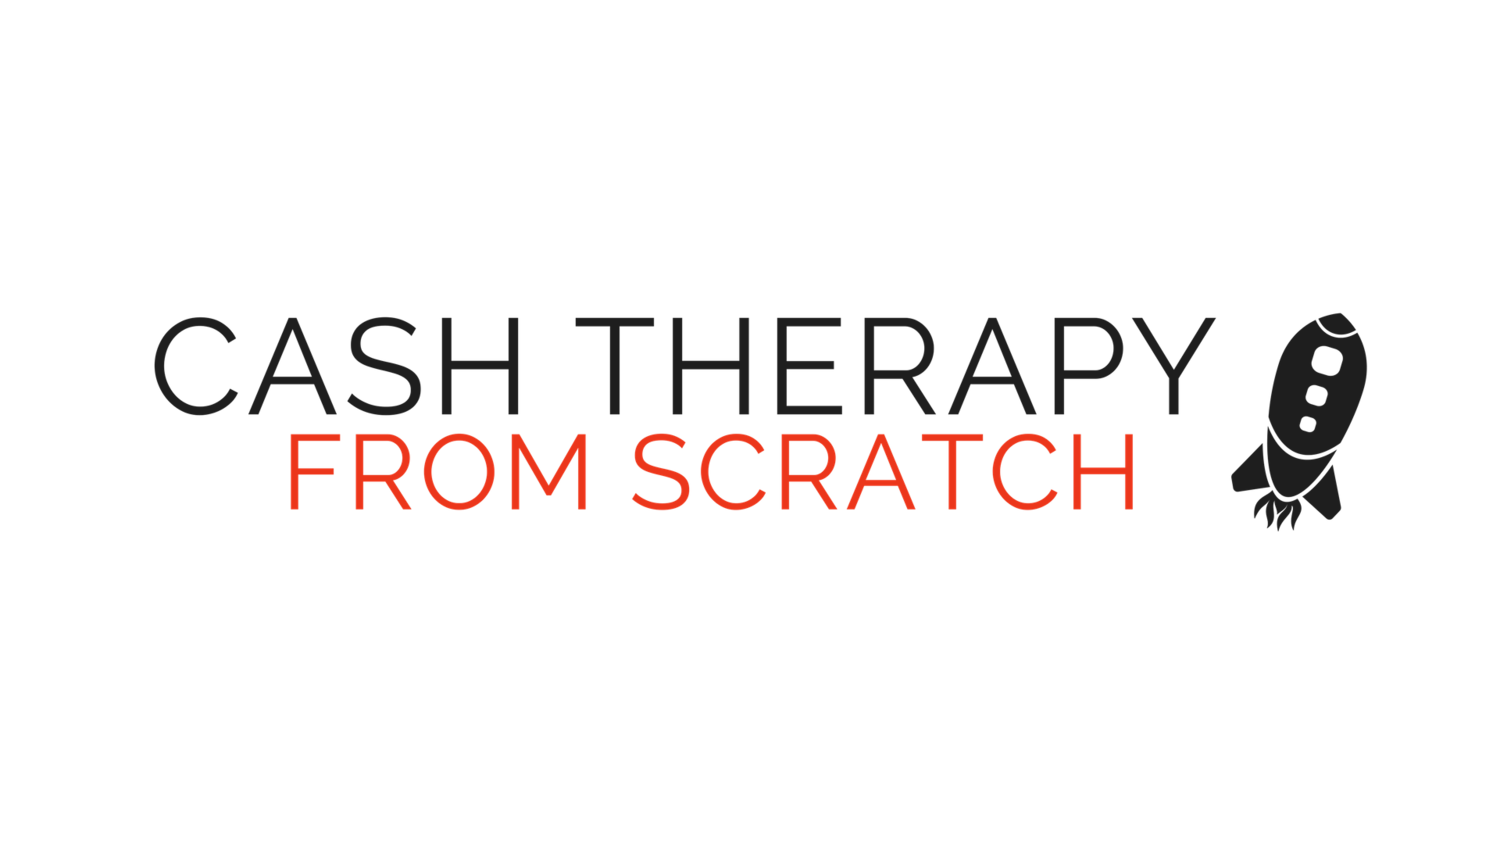 Cash Therapy Practice From Scratch